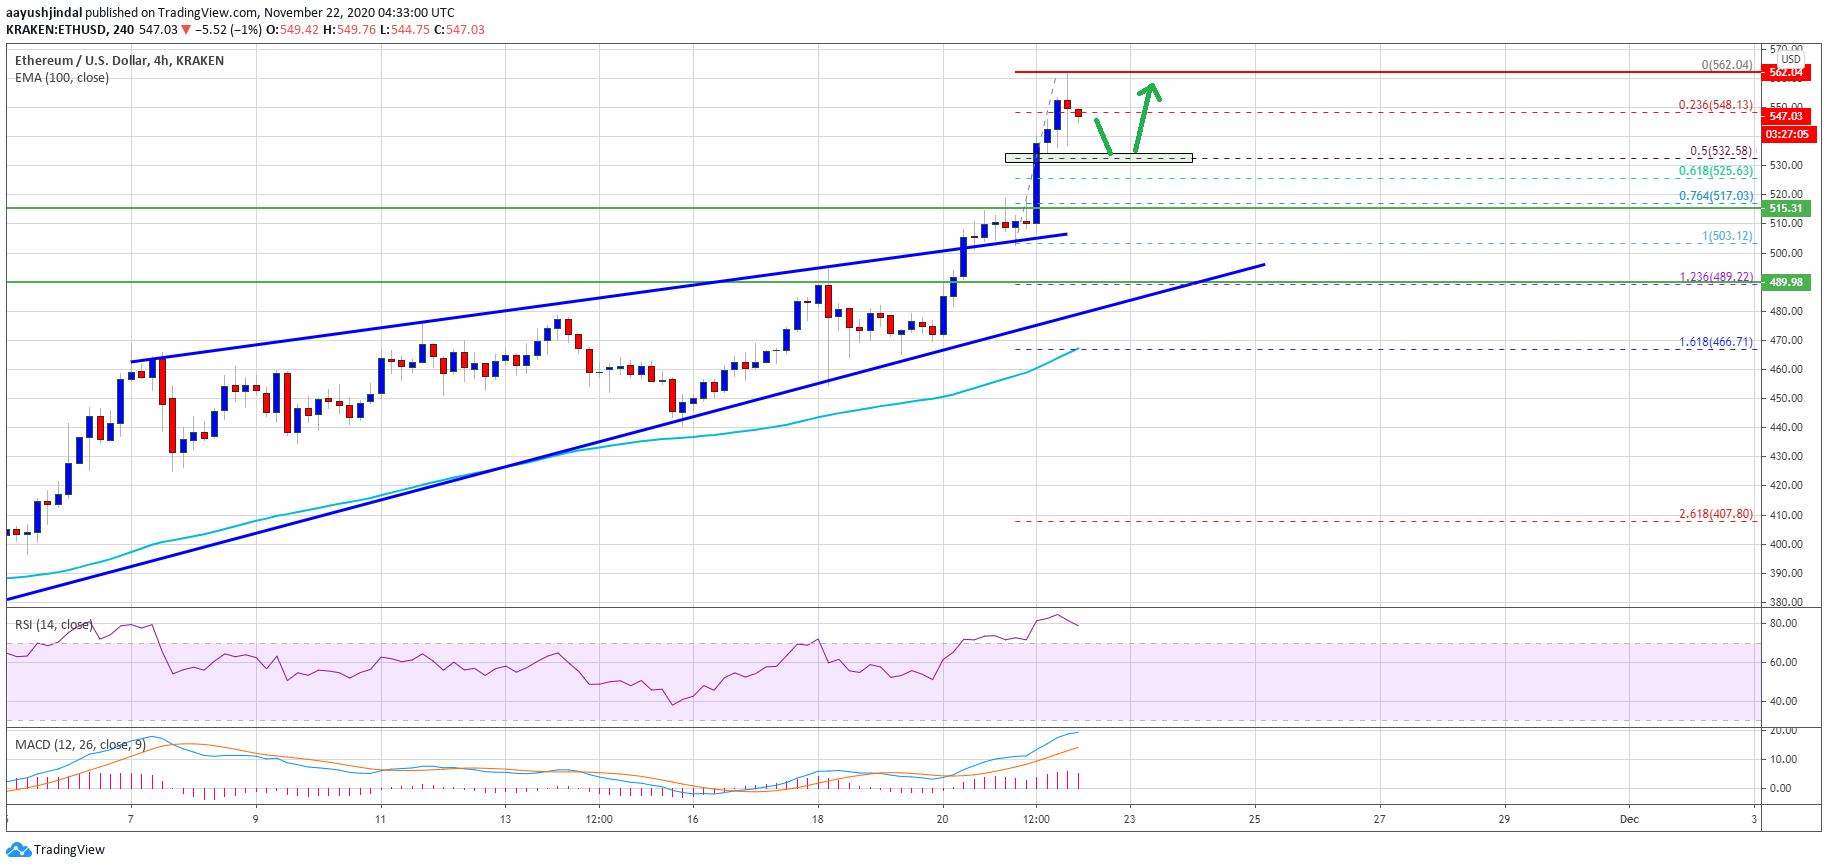 Ethereum Could Correct Gains, Why Dips Remain Attractive Near $530